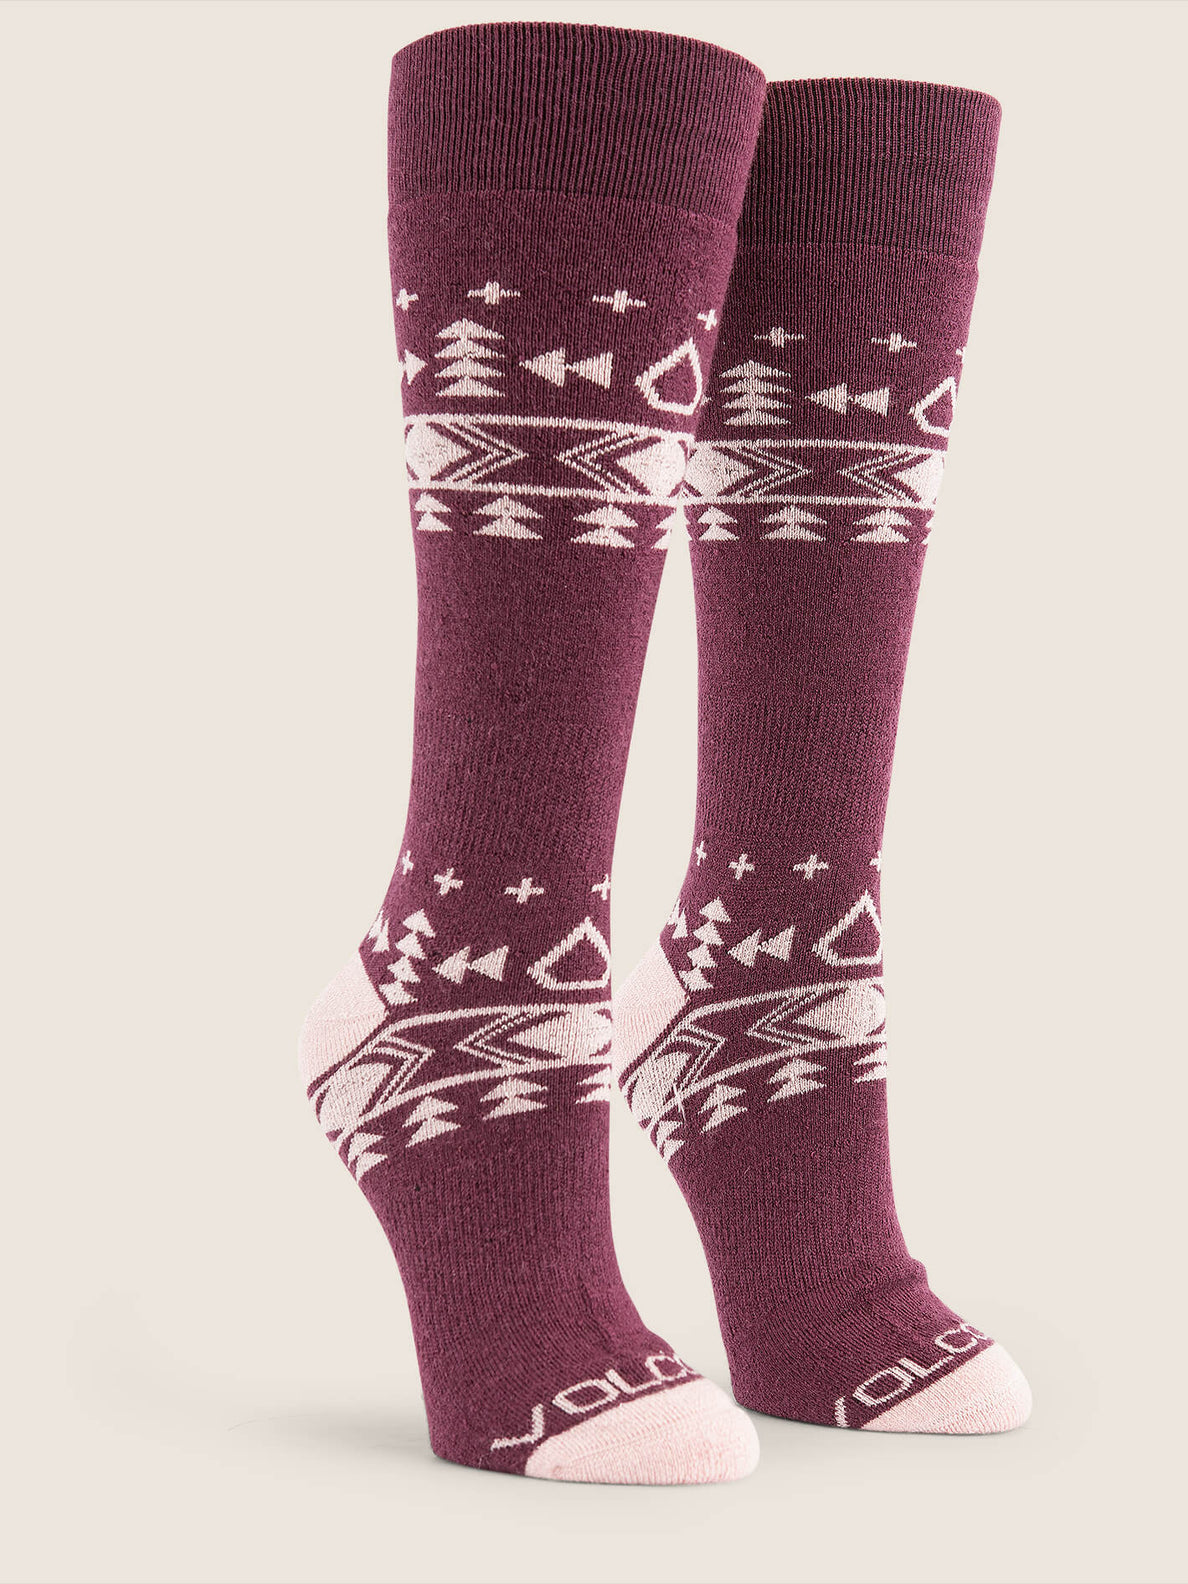 Tundra Tech Sock In Merlot, Front View